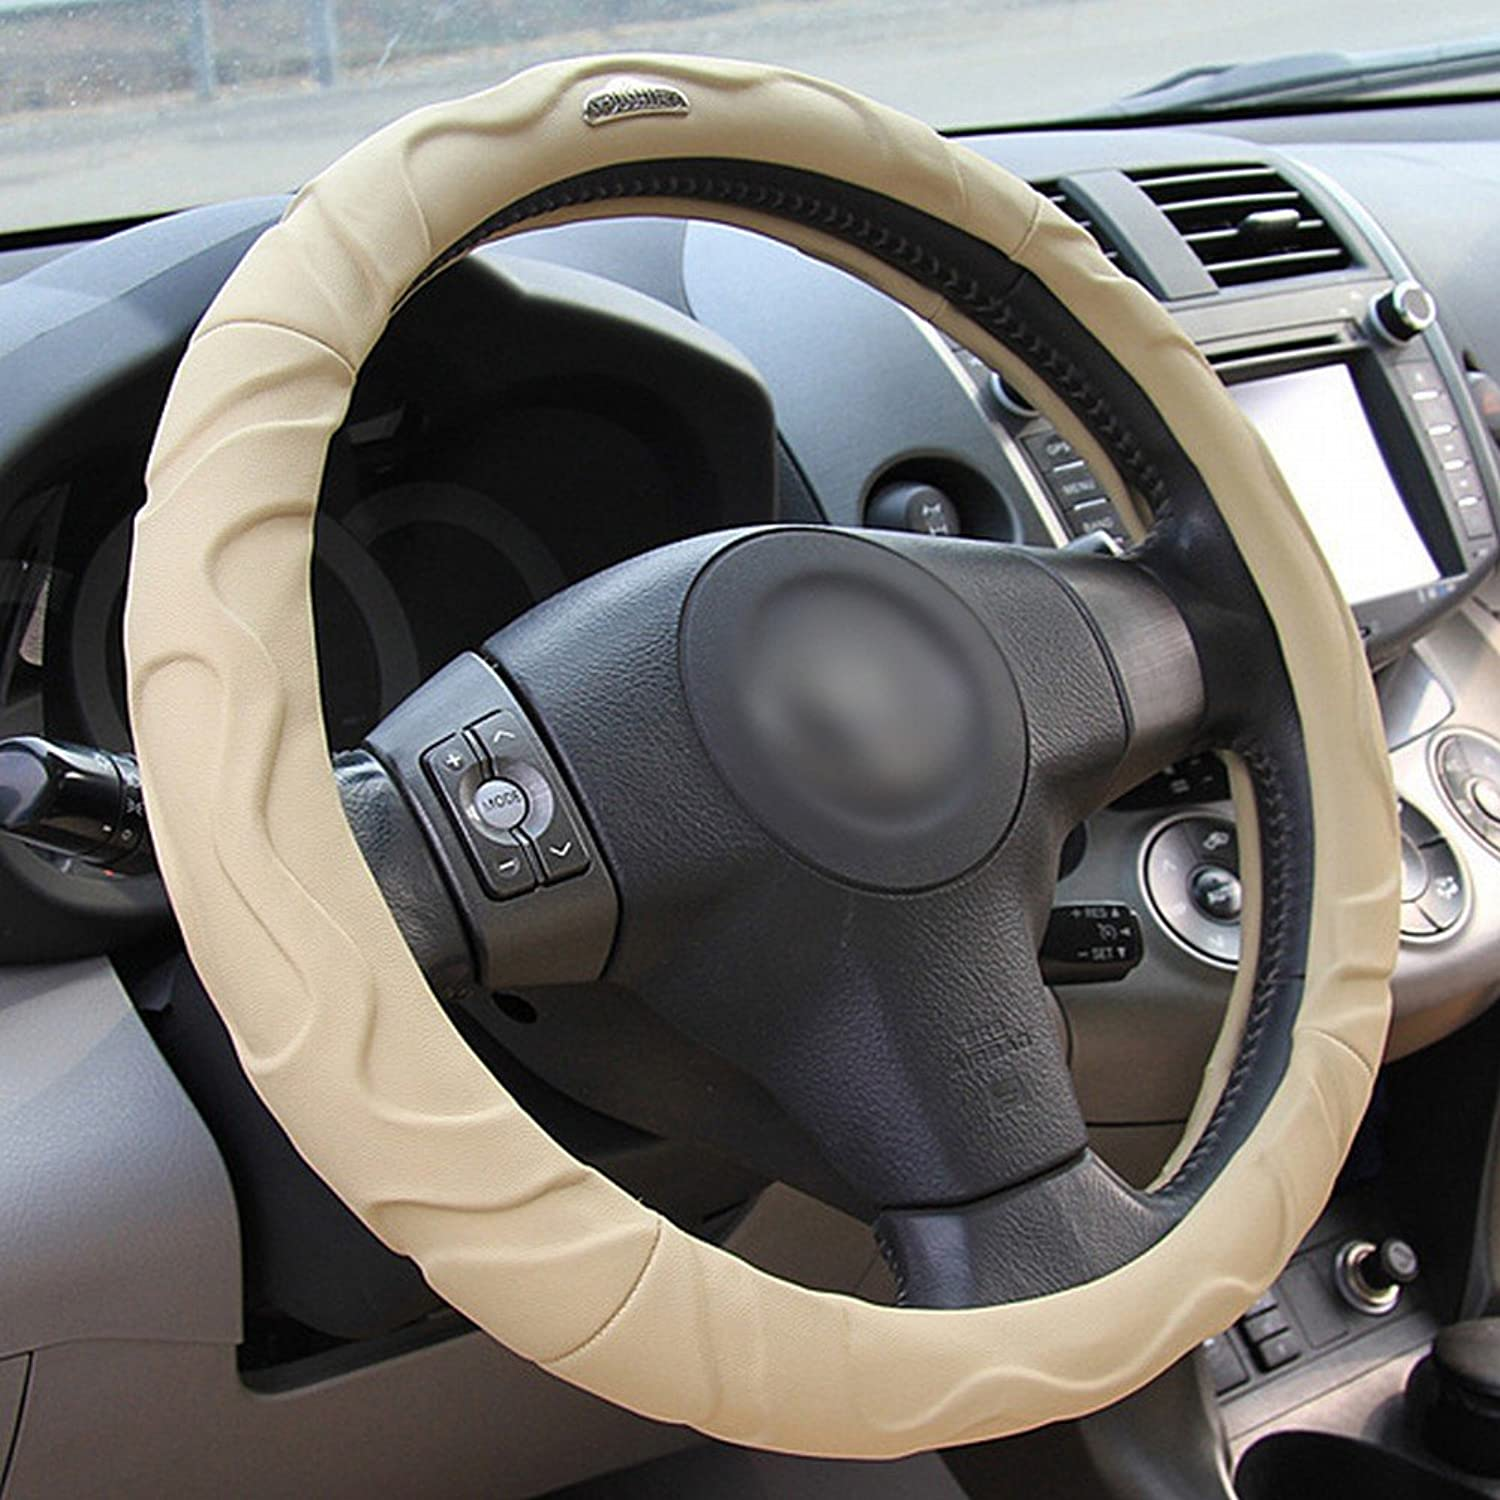 DEED Car Steering Wheel Cover 15 Inch No Smell Comfort Durability Safety Absorb Sweat Dewet